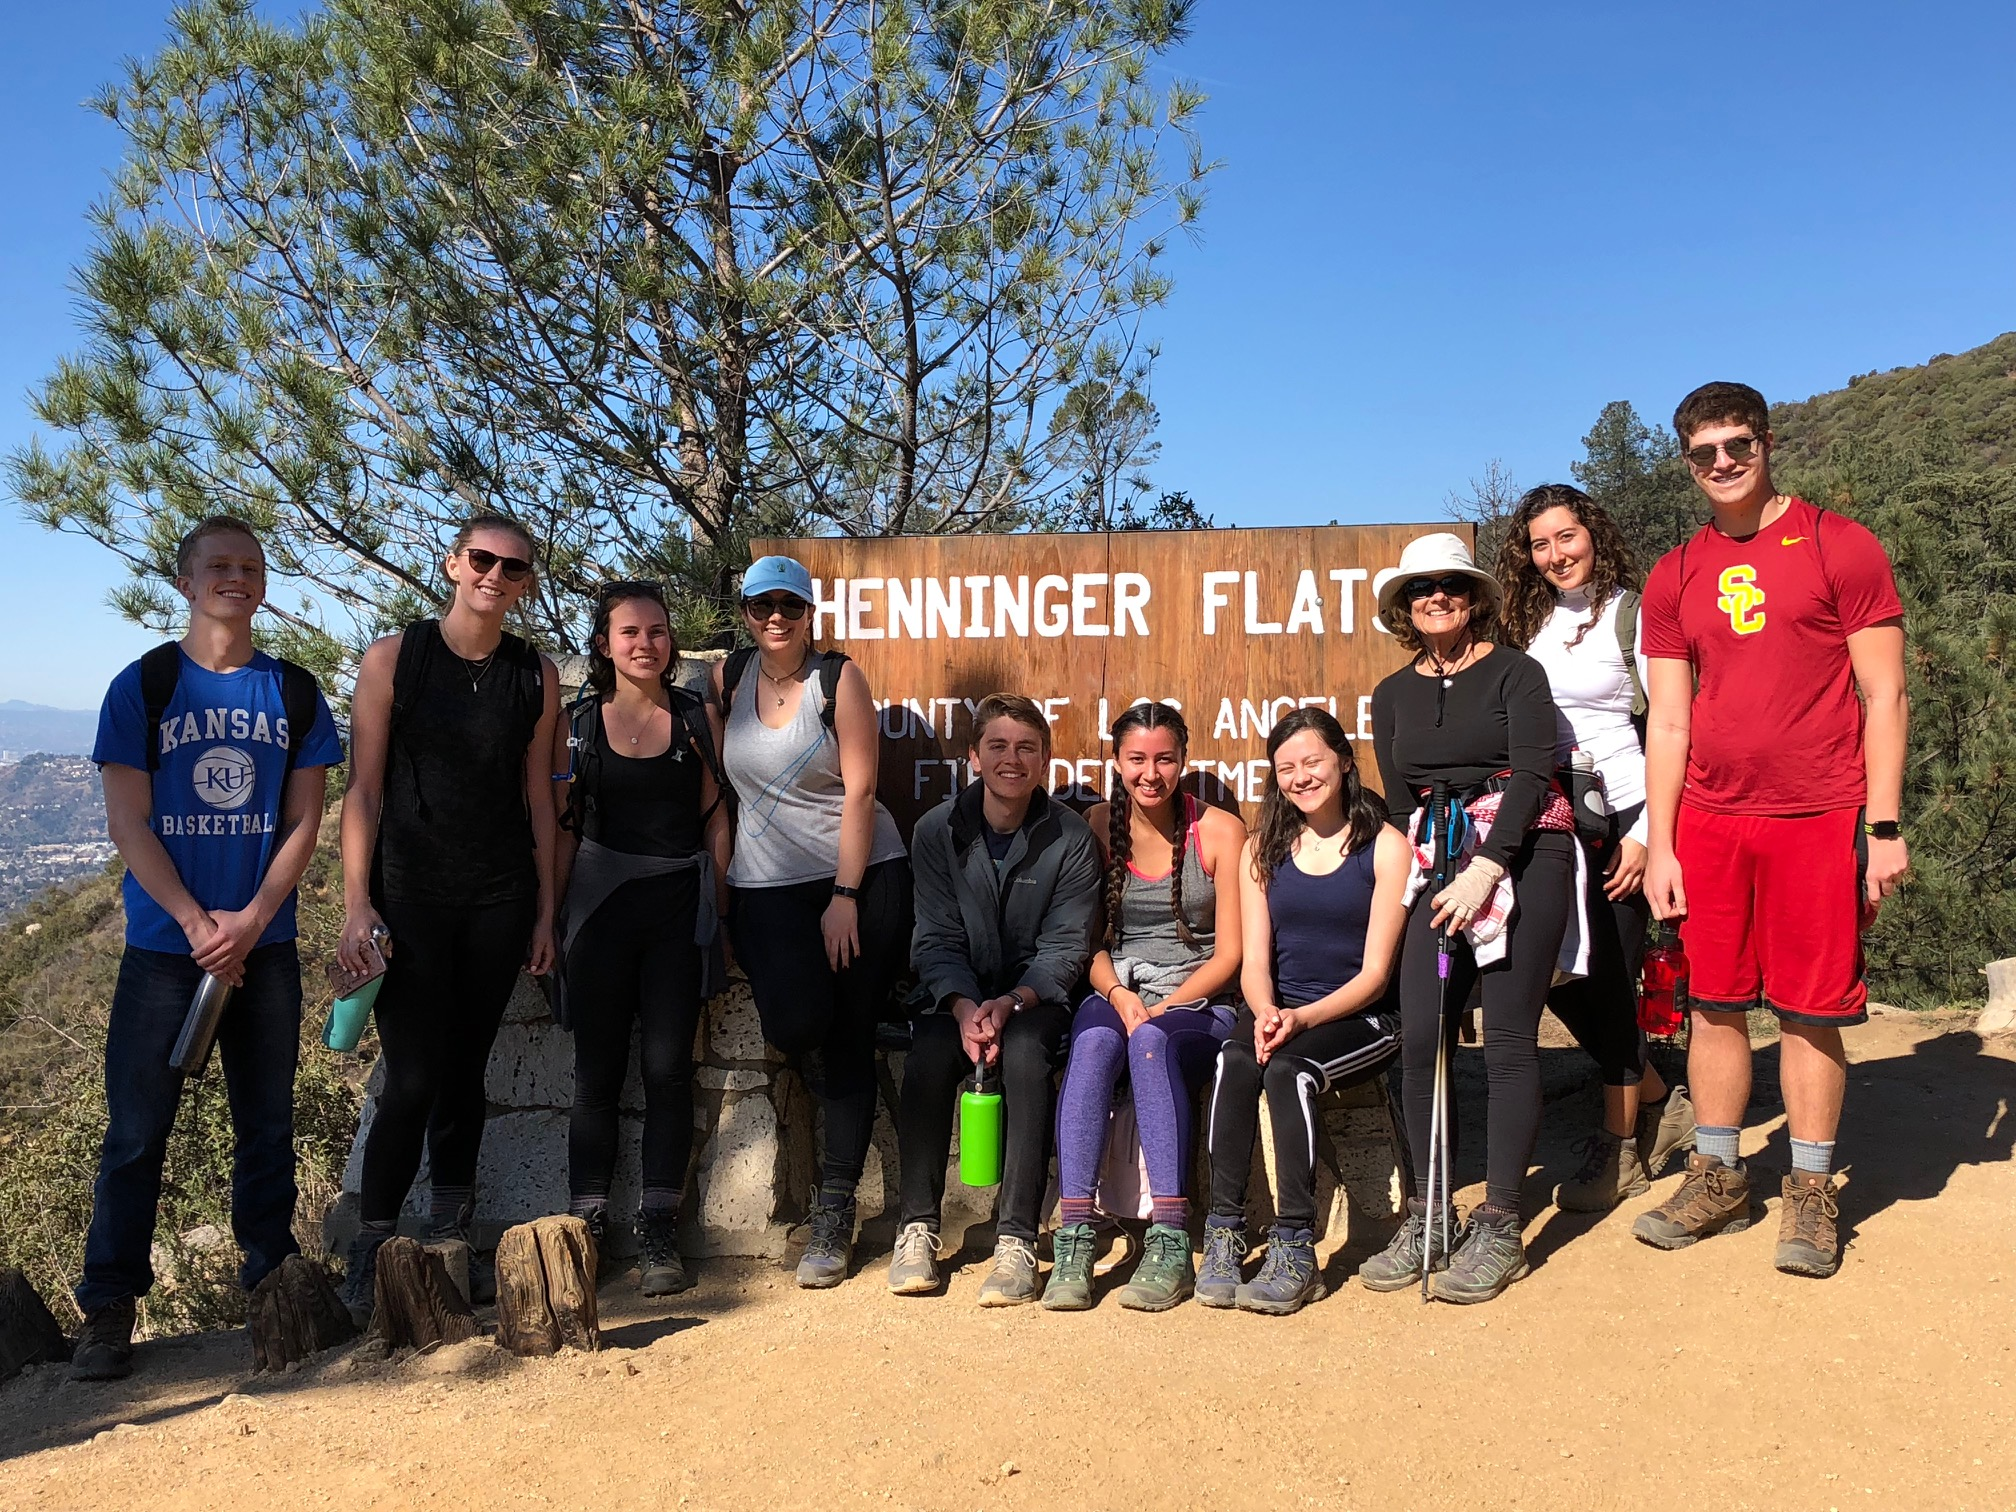 Maymester Class 2018 hiking 7.5 miles to Henninger flats in Altadena.  Trying out the new boots.